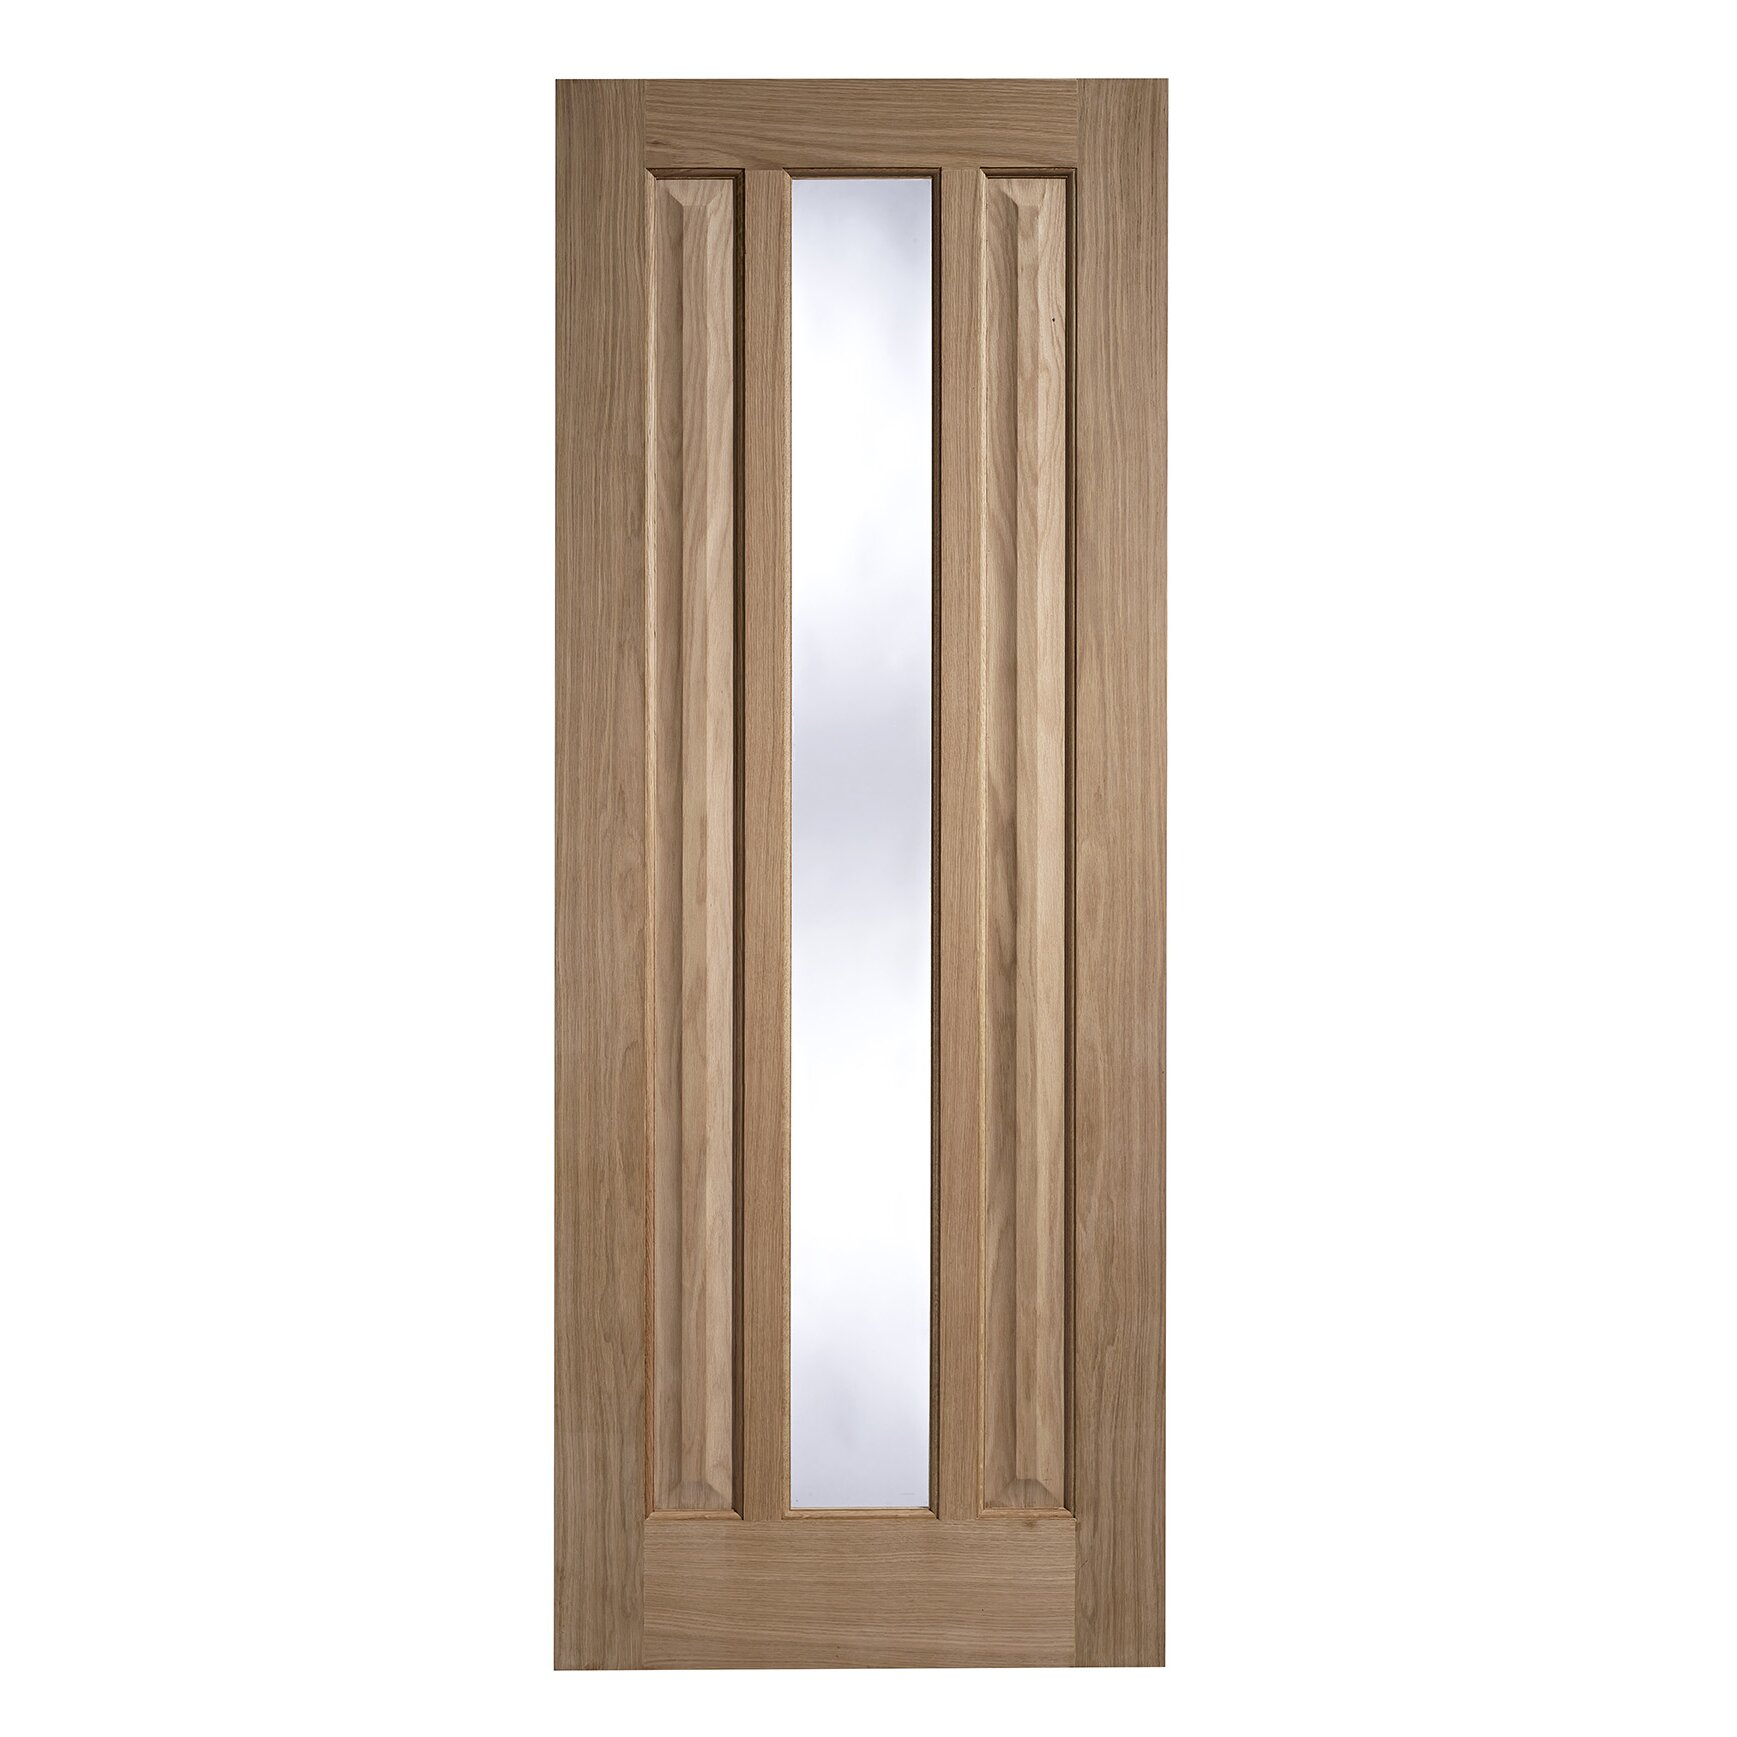 Lpd doors kilburn wooden 2 panel unfinished glazed for Internal wooden doors